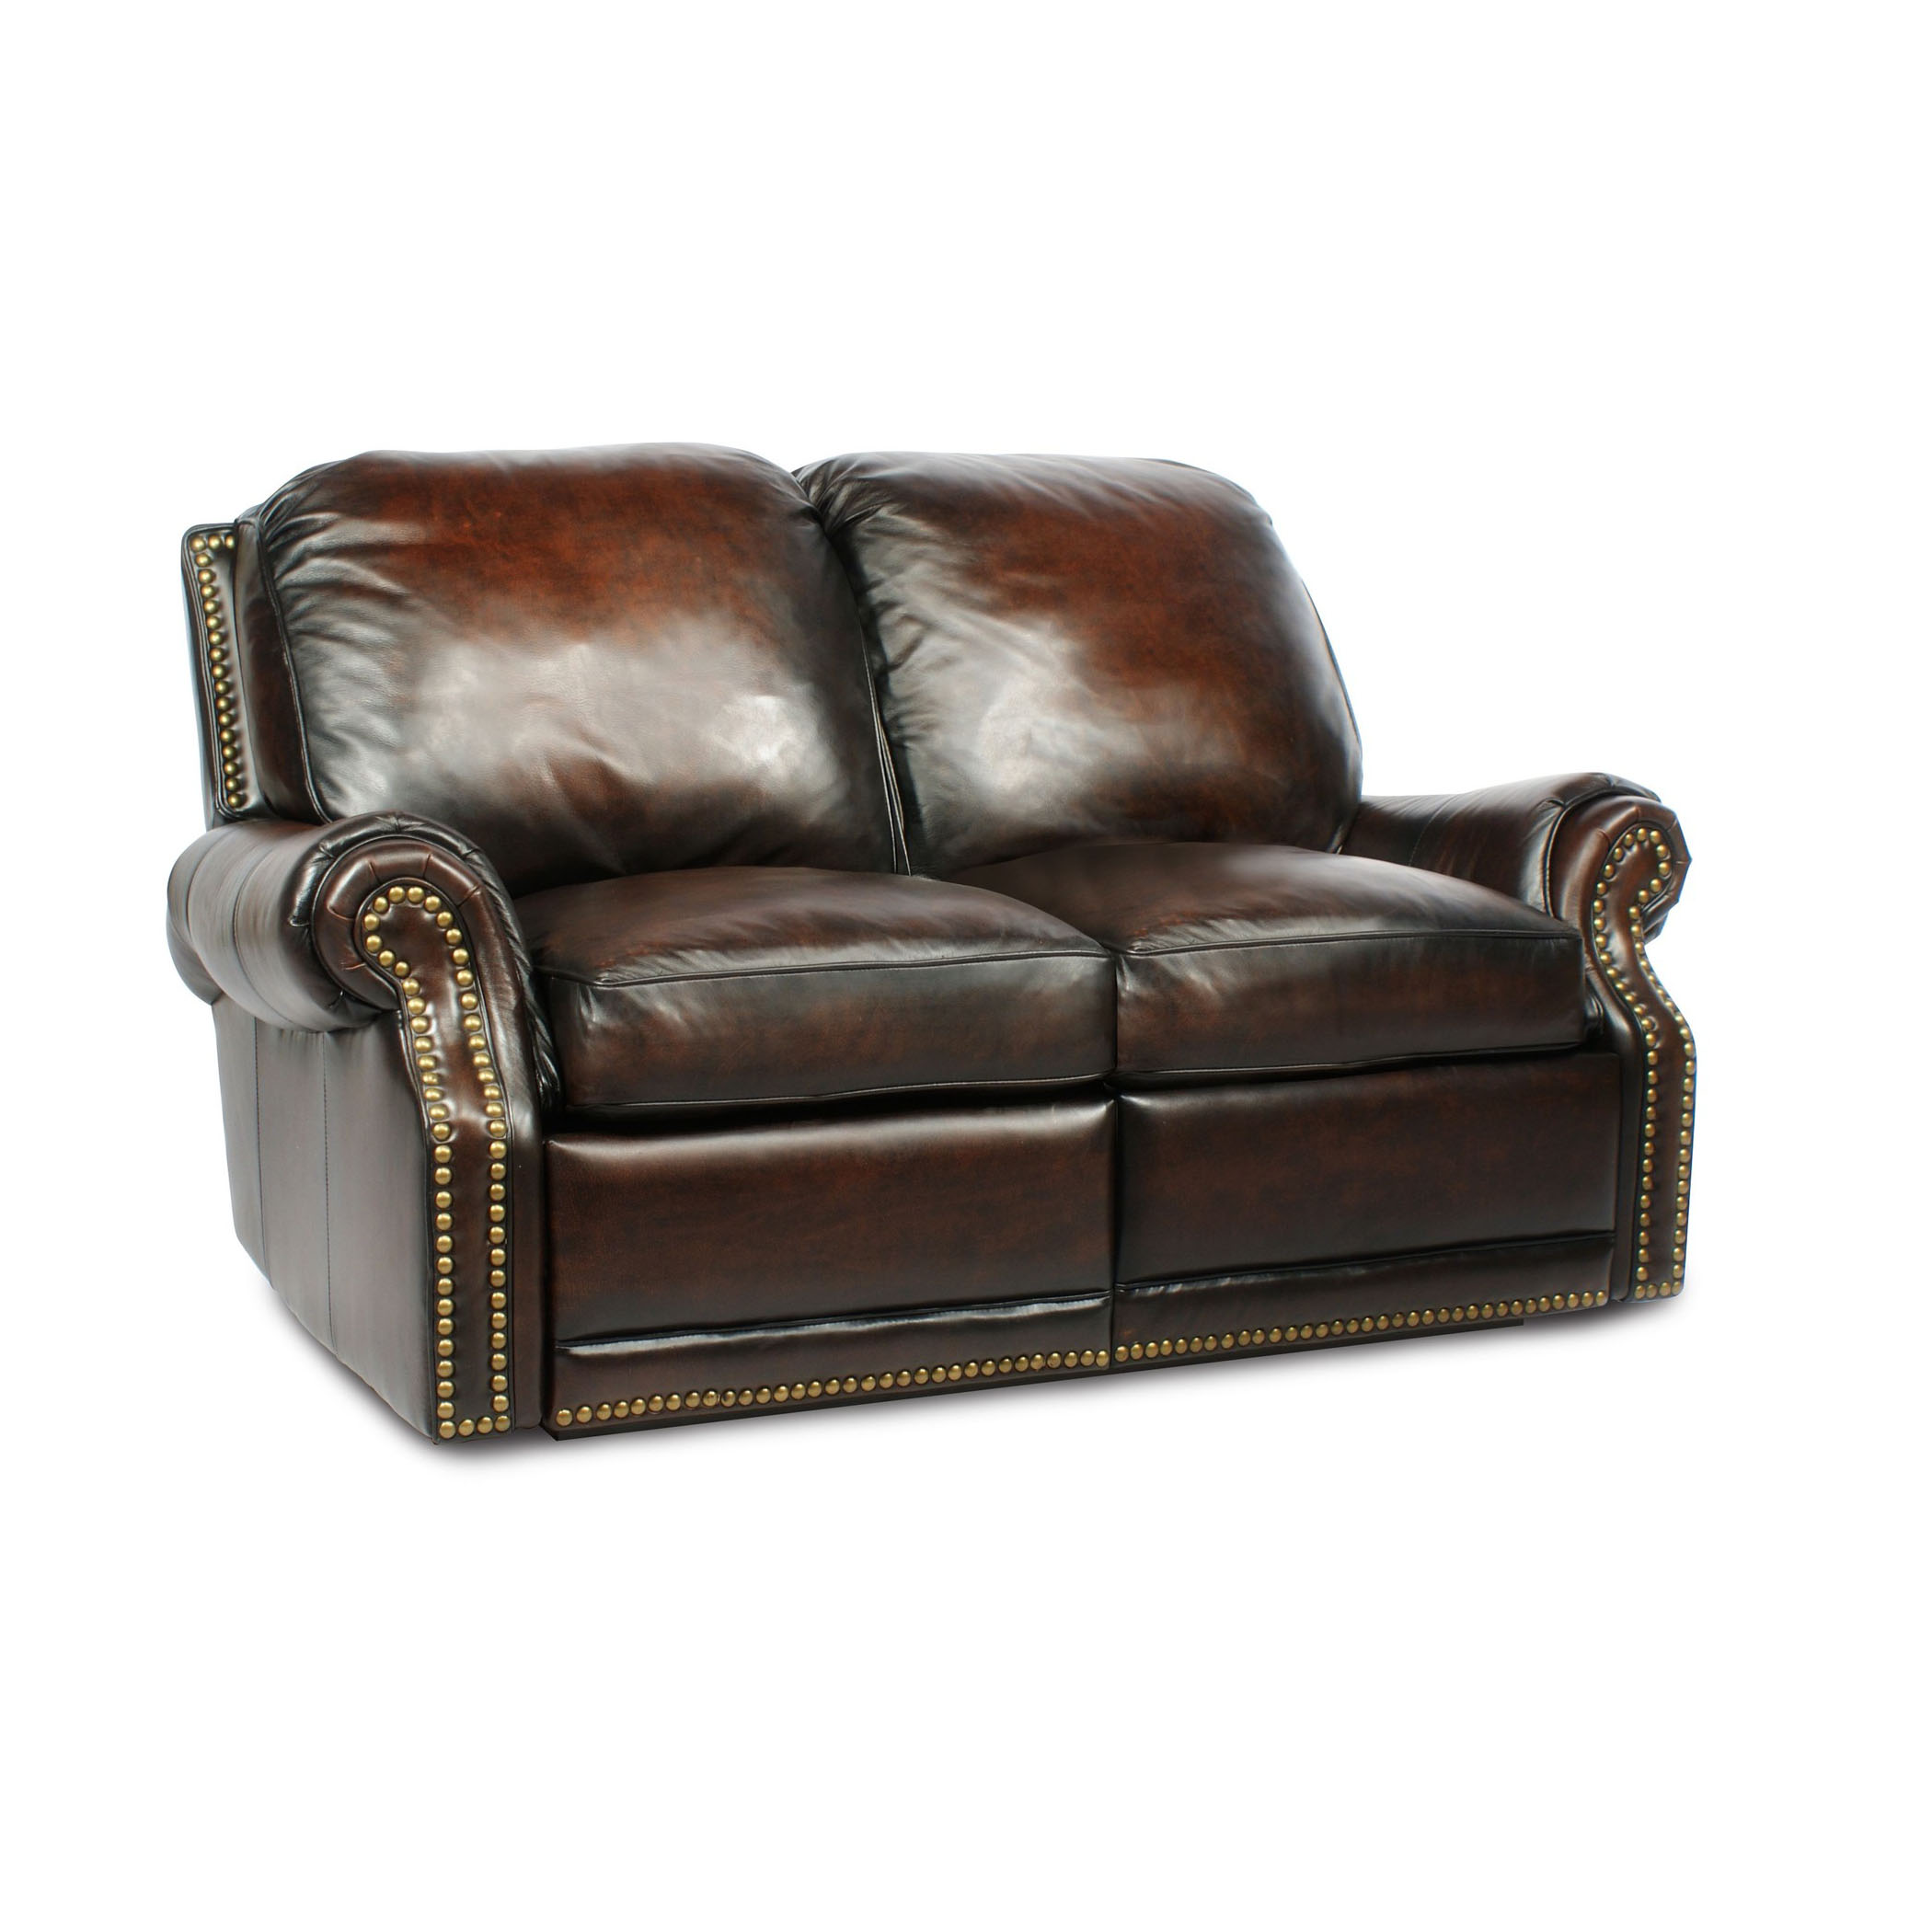 Barcalounger Premier II Leather 2 Seat LoveSeat Sofa Leather 2